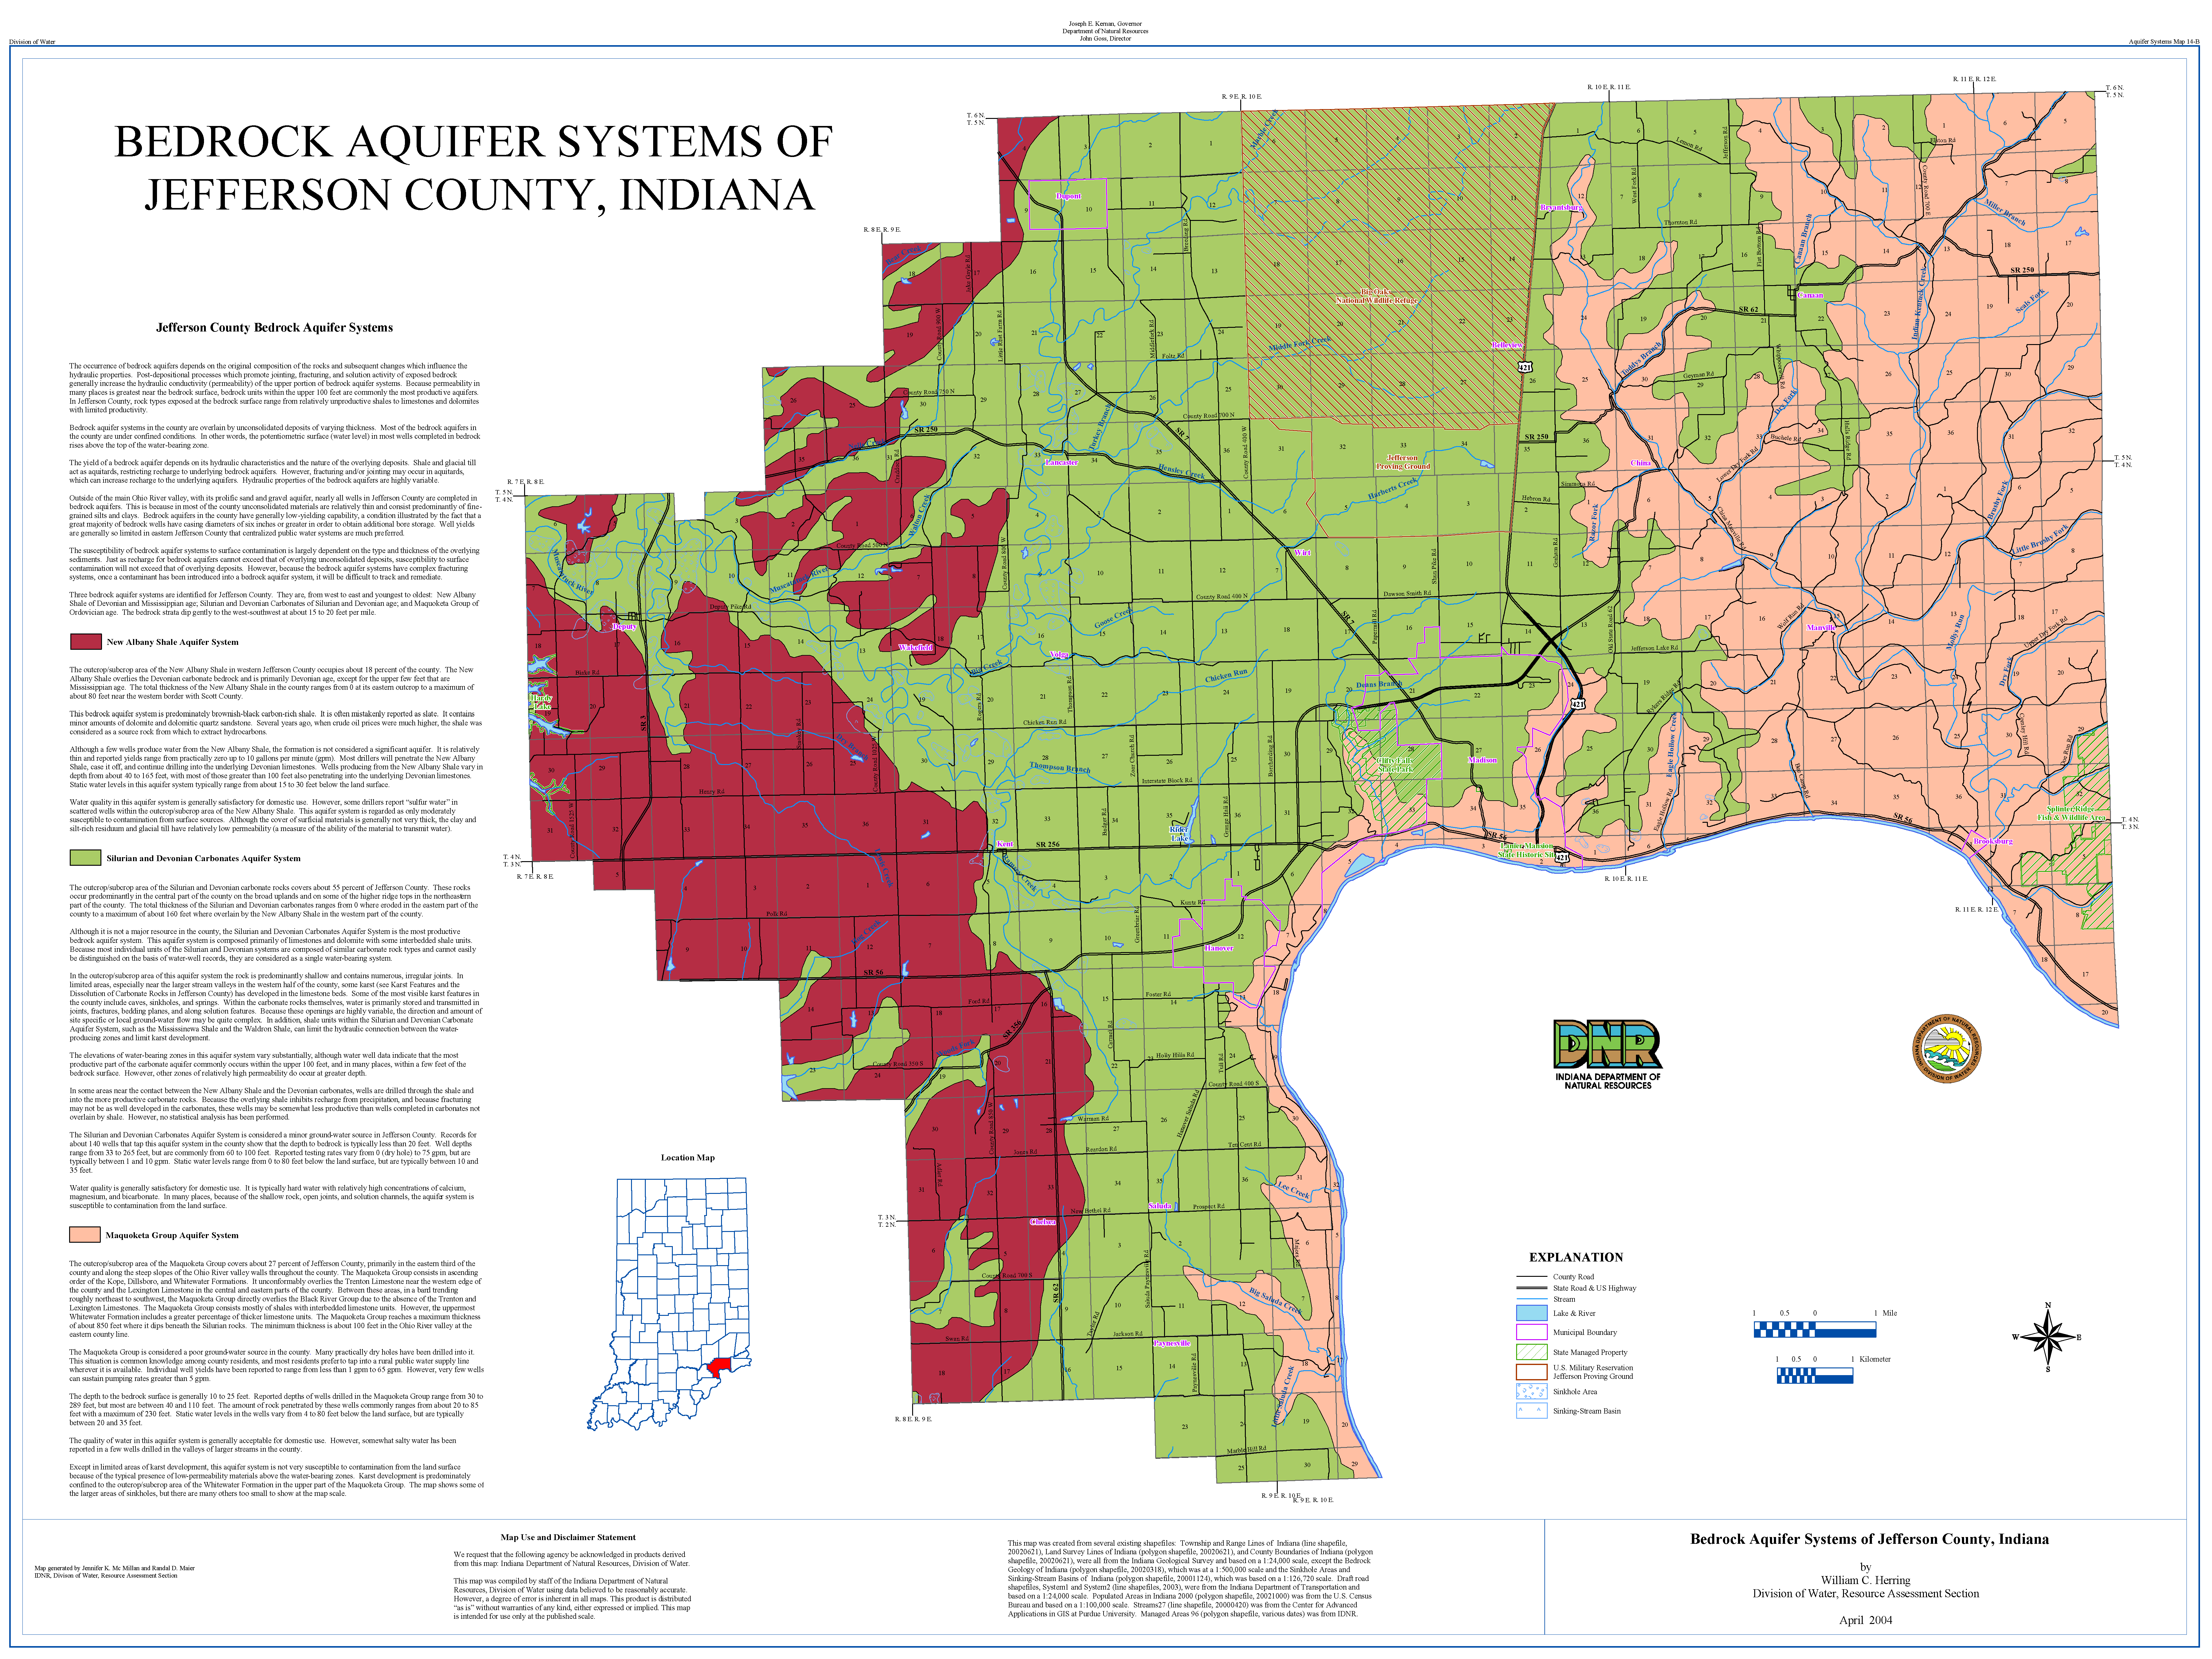 Jefferson County Indiana Map.Dnr Aquifer Systems Maps 14 A And 14 B Unconsolidated And Bedrock